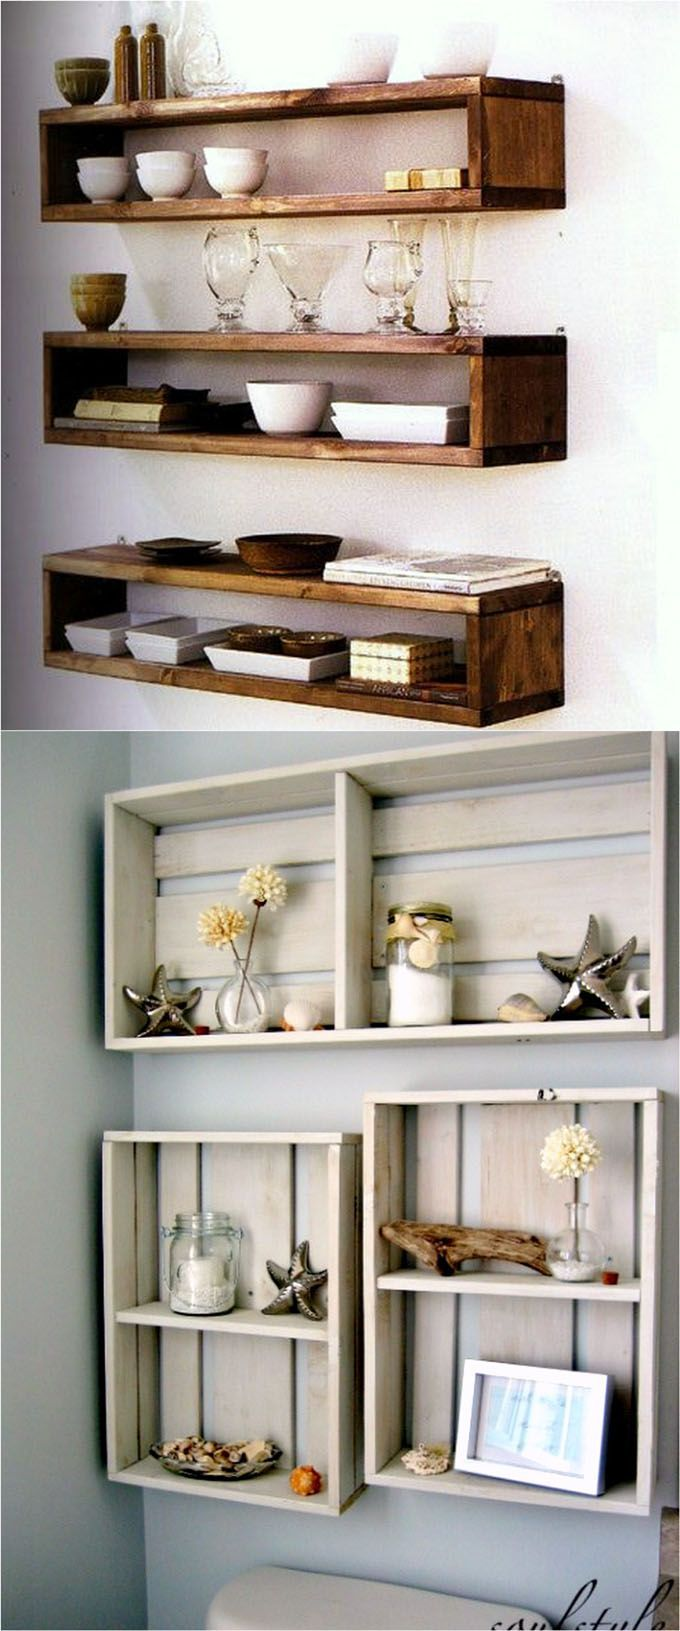 How To Hang Floating Shelves Delectable 16 Easy And Stylish Diy Floating Shelves & Wall Shelves  Wall Inspiration Design